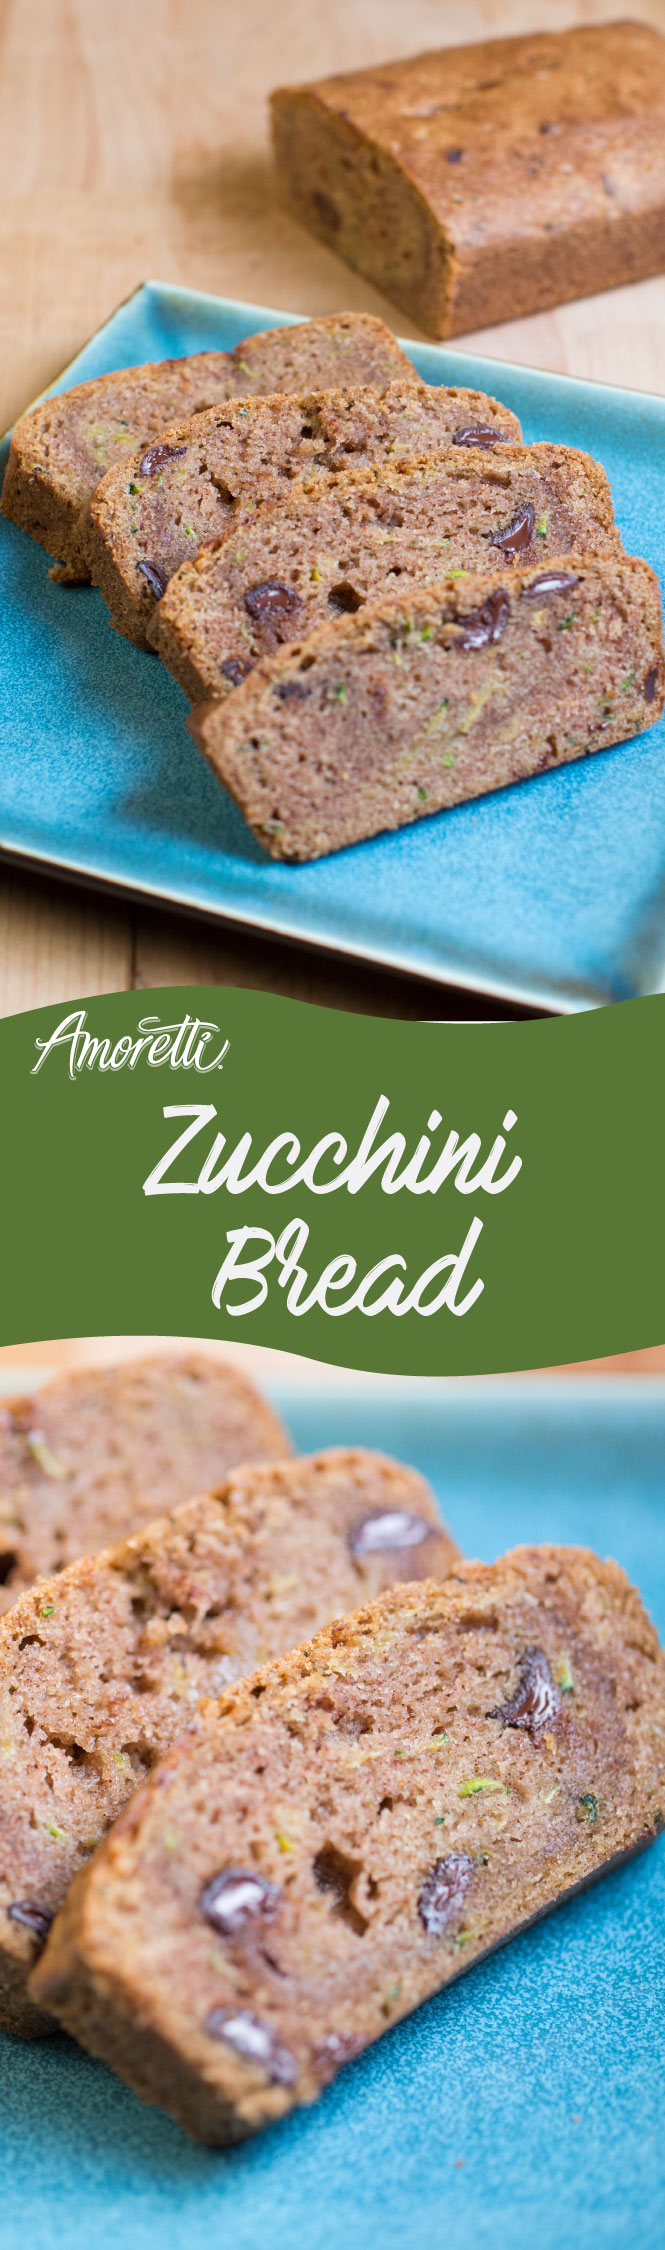 Chocolate chip zucchini bread!